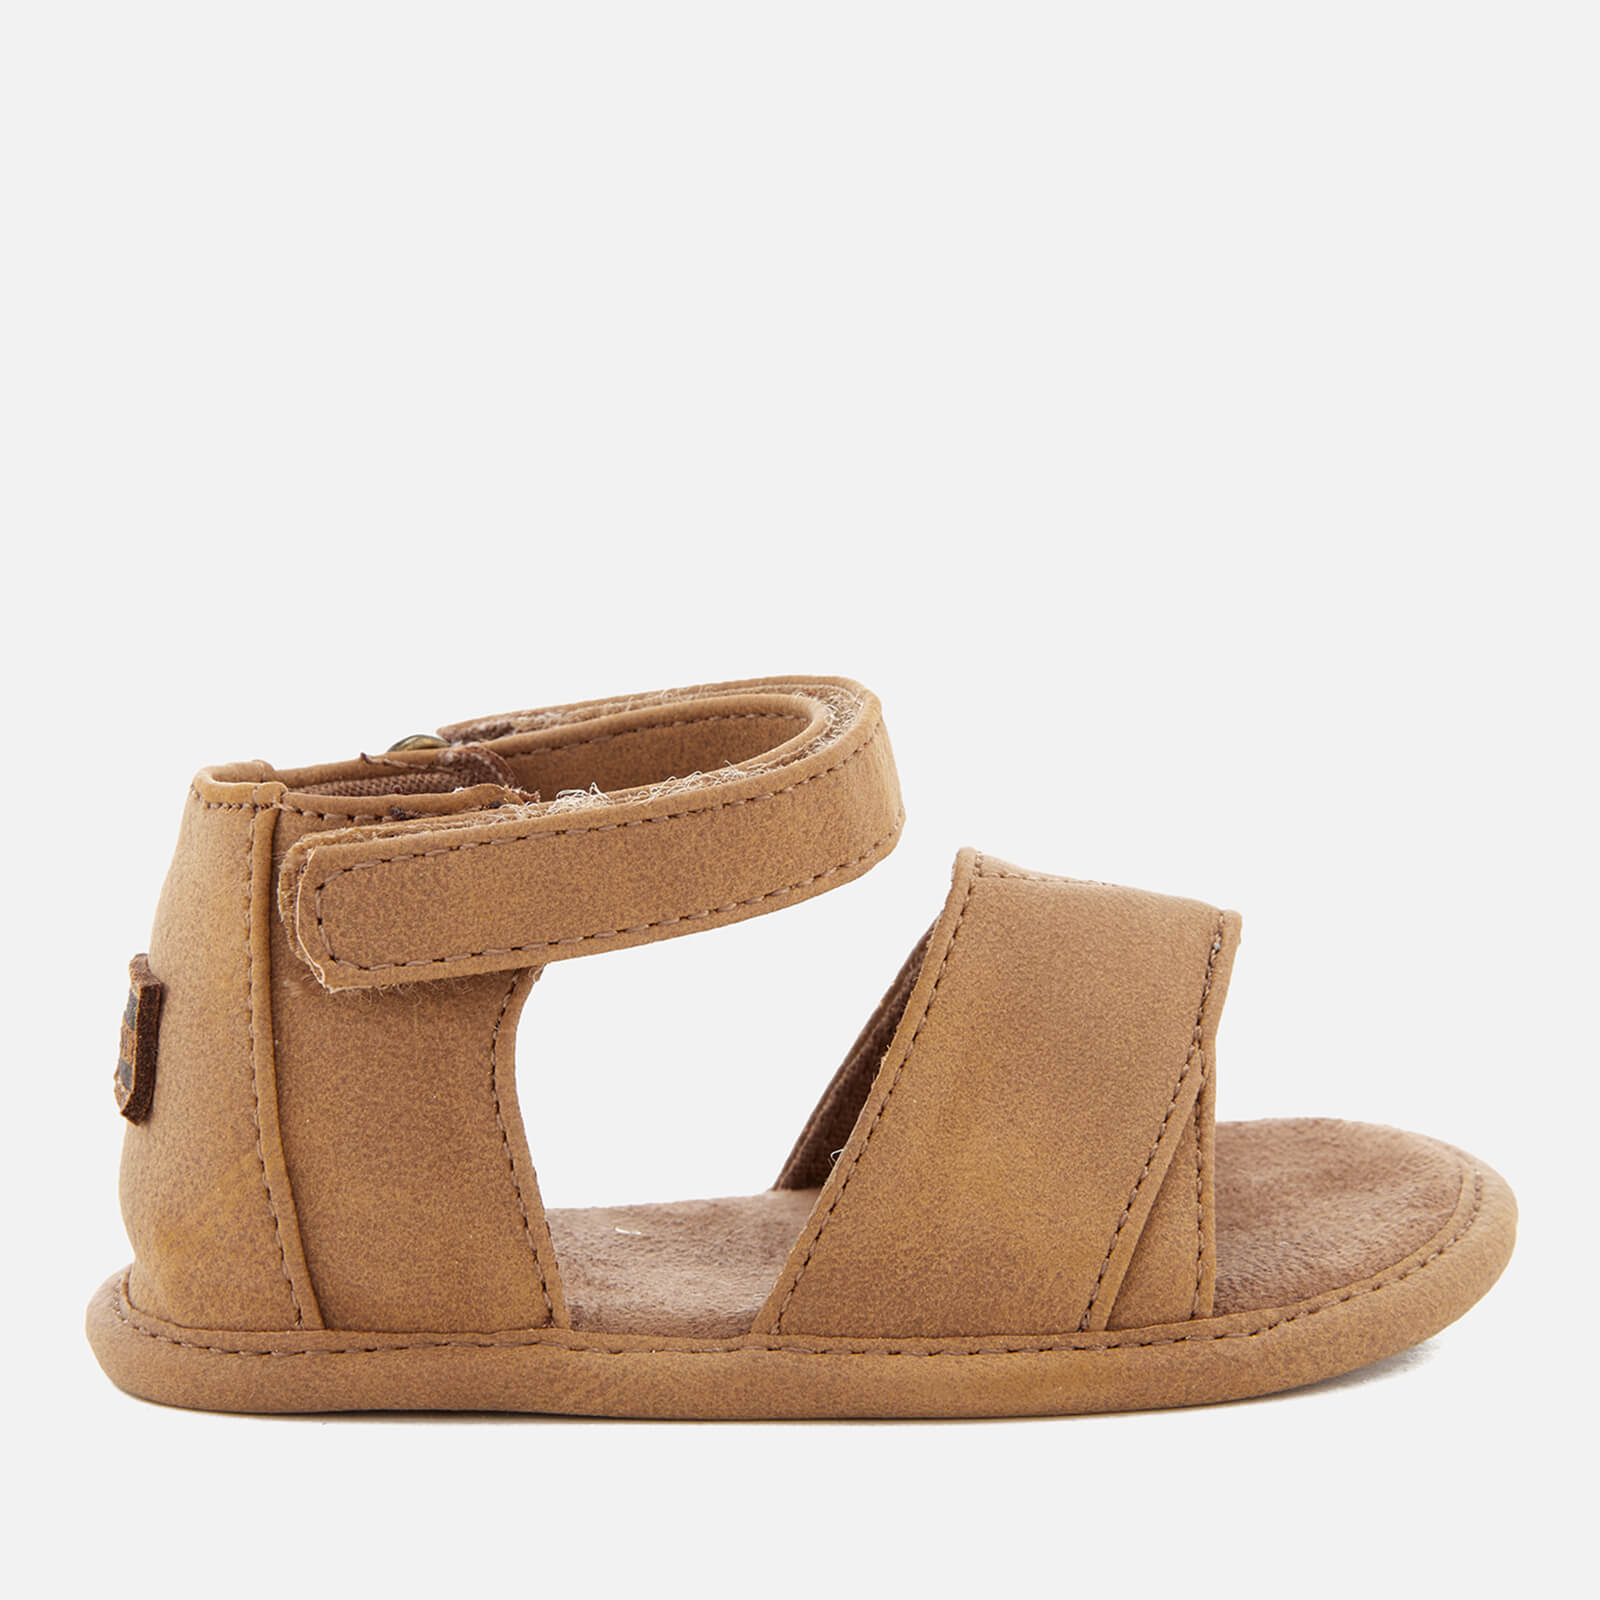 TOMS Babies' Shiloh Sandals - Toffee